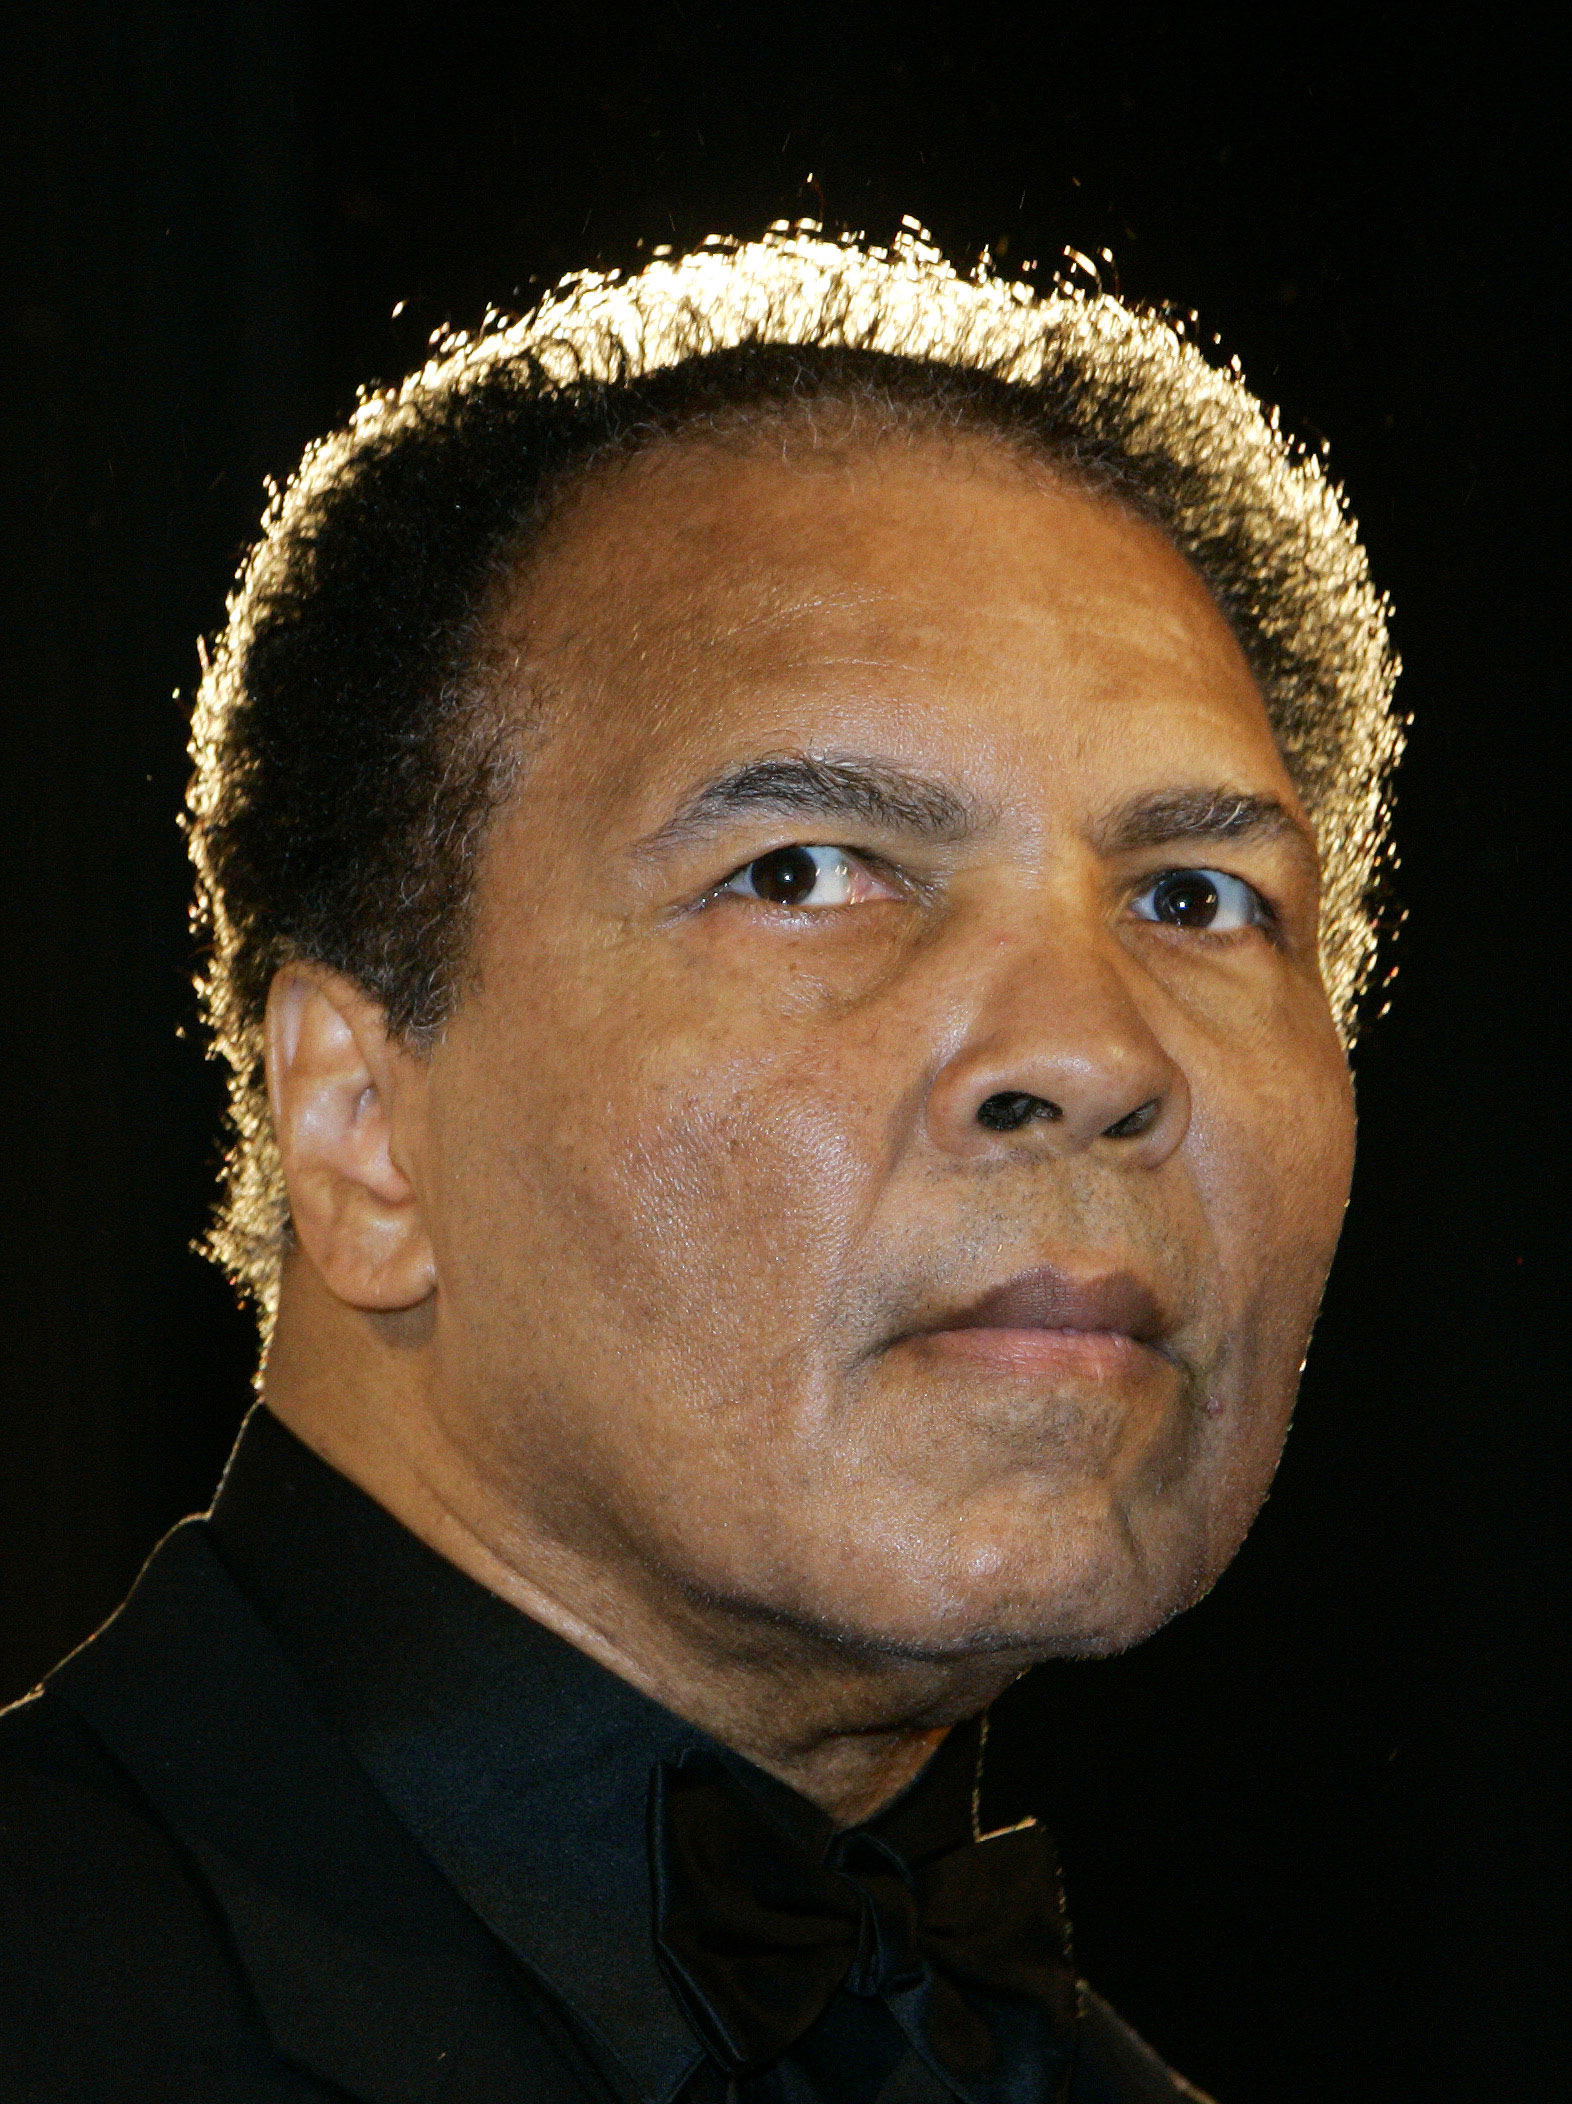 FILE - In this Dec. 17, 2005, file photo, boxing legend Muhammad Ali poses in Berlin, Germany.  Ali, the magnificent heavyweight champion whose fast fists and irrepressible personality transcended sports and captivated the world, has died according to a s